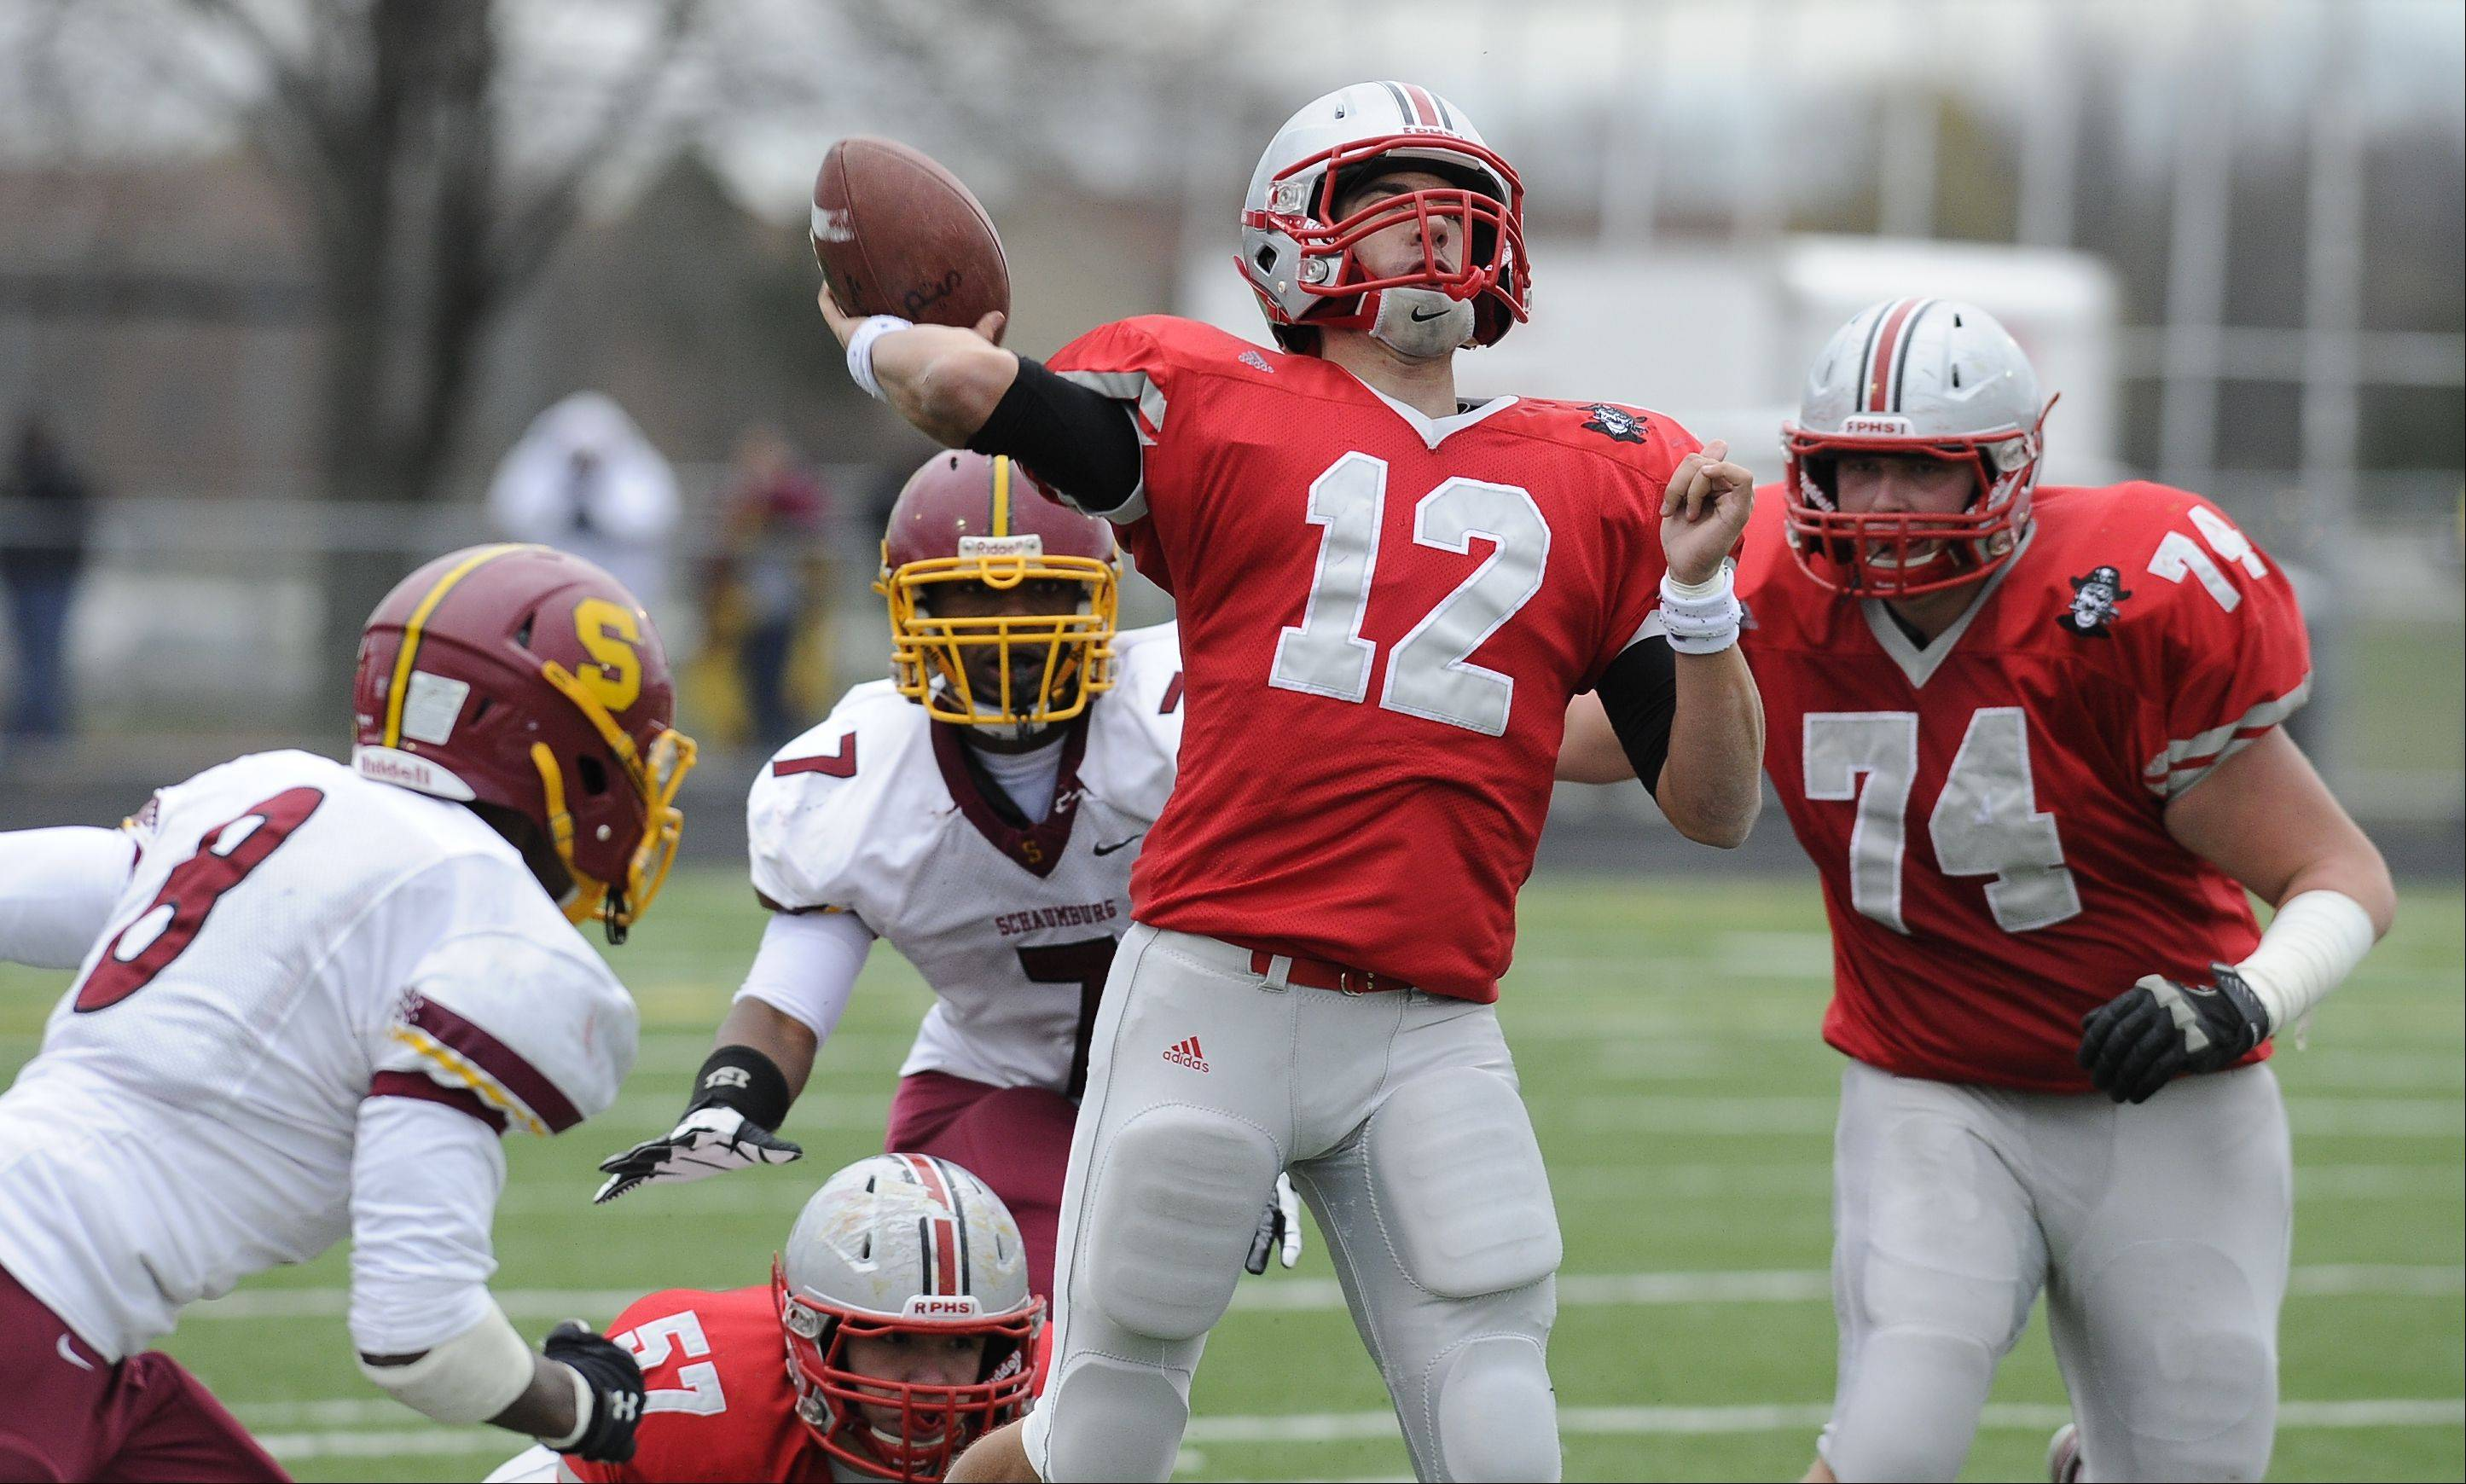 Playoffs-Round Two- Photos from the Palatine vs. Schaumburg football game on Saturday, November 3rd, in Palatine.